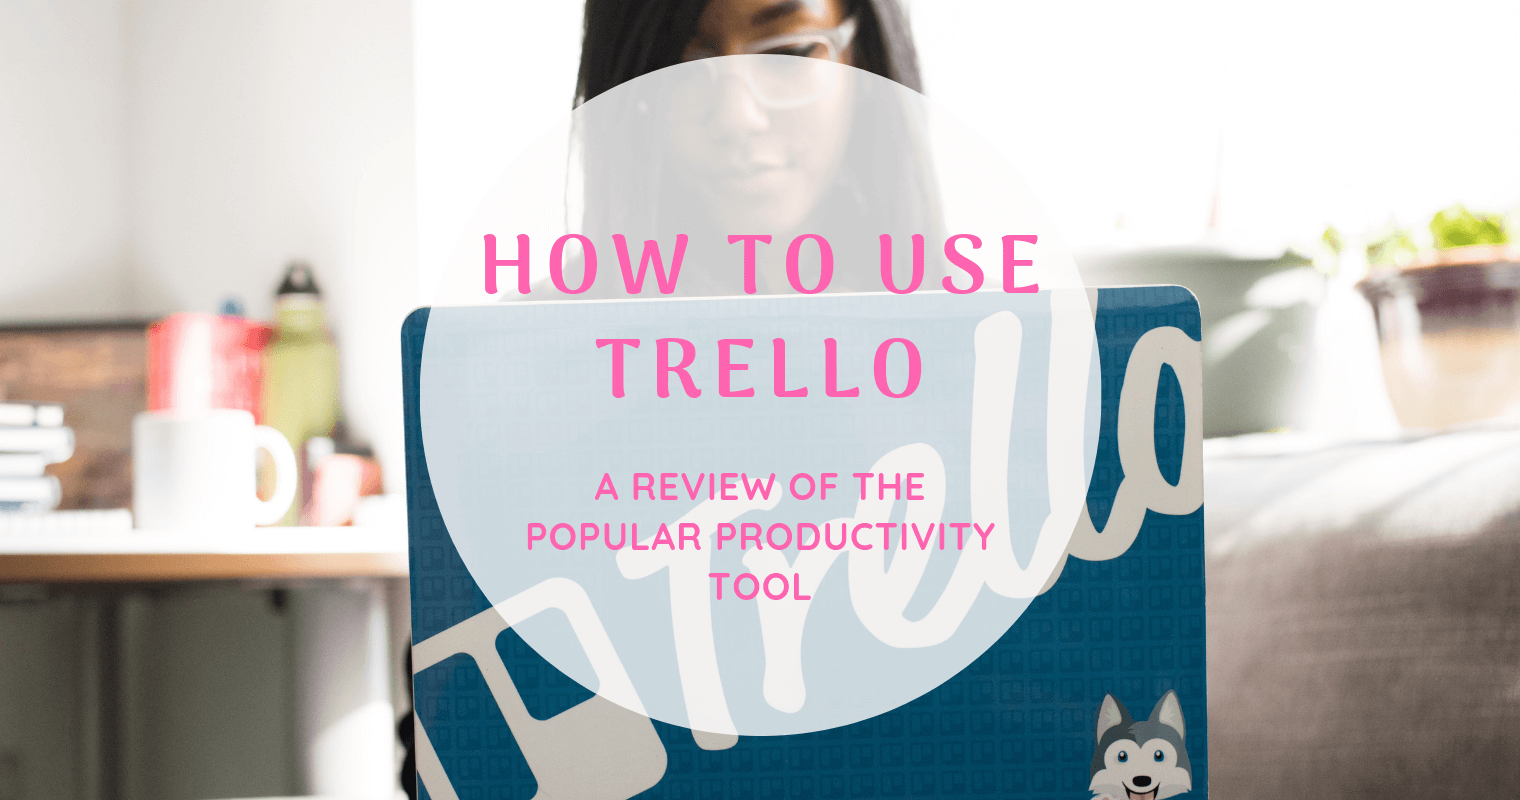 Trello makes it easy to get organized.